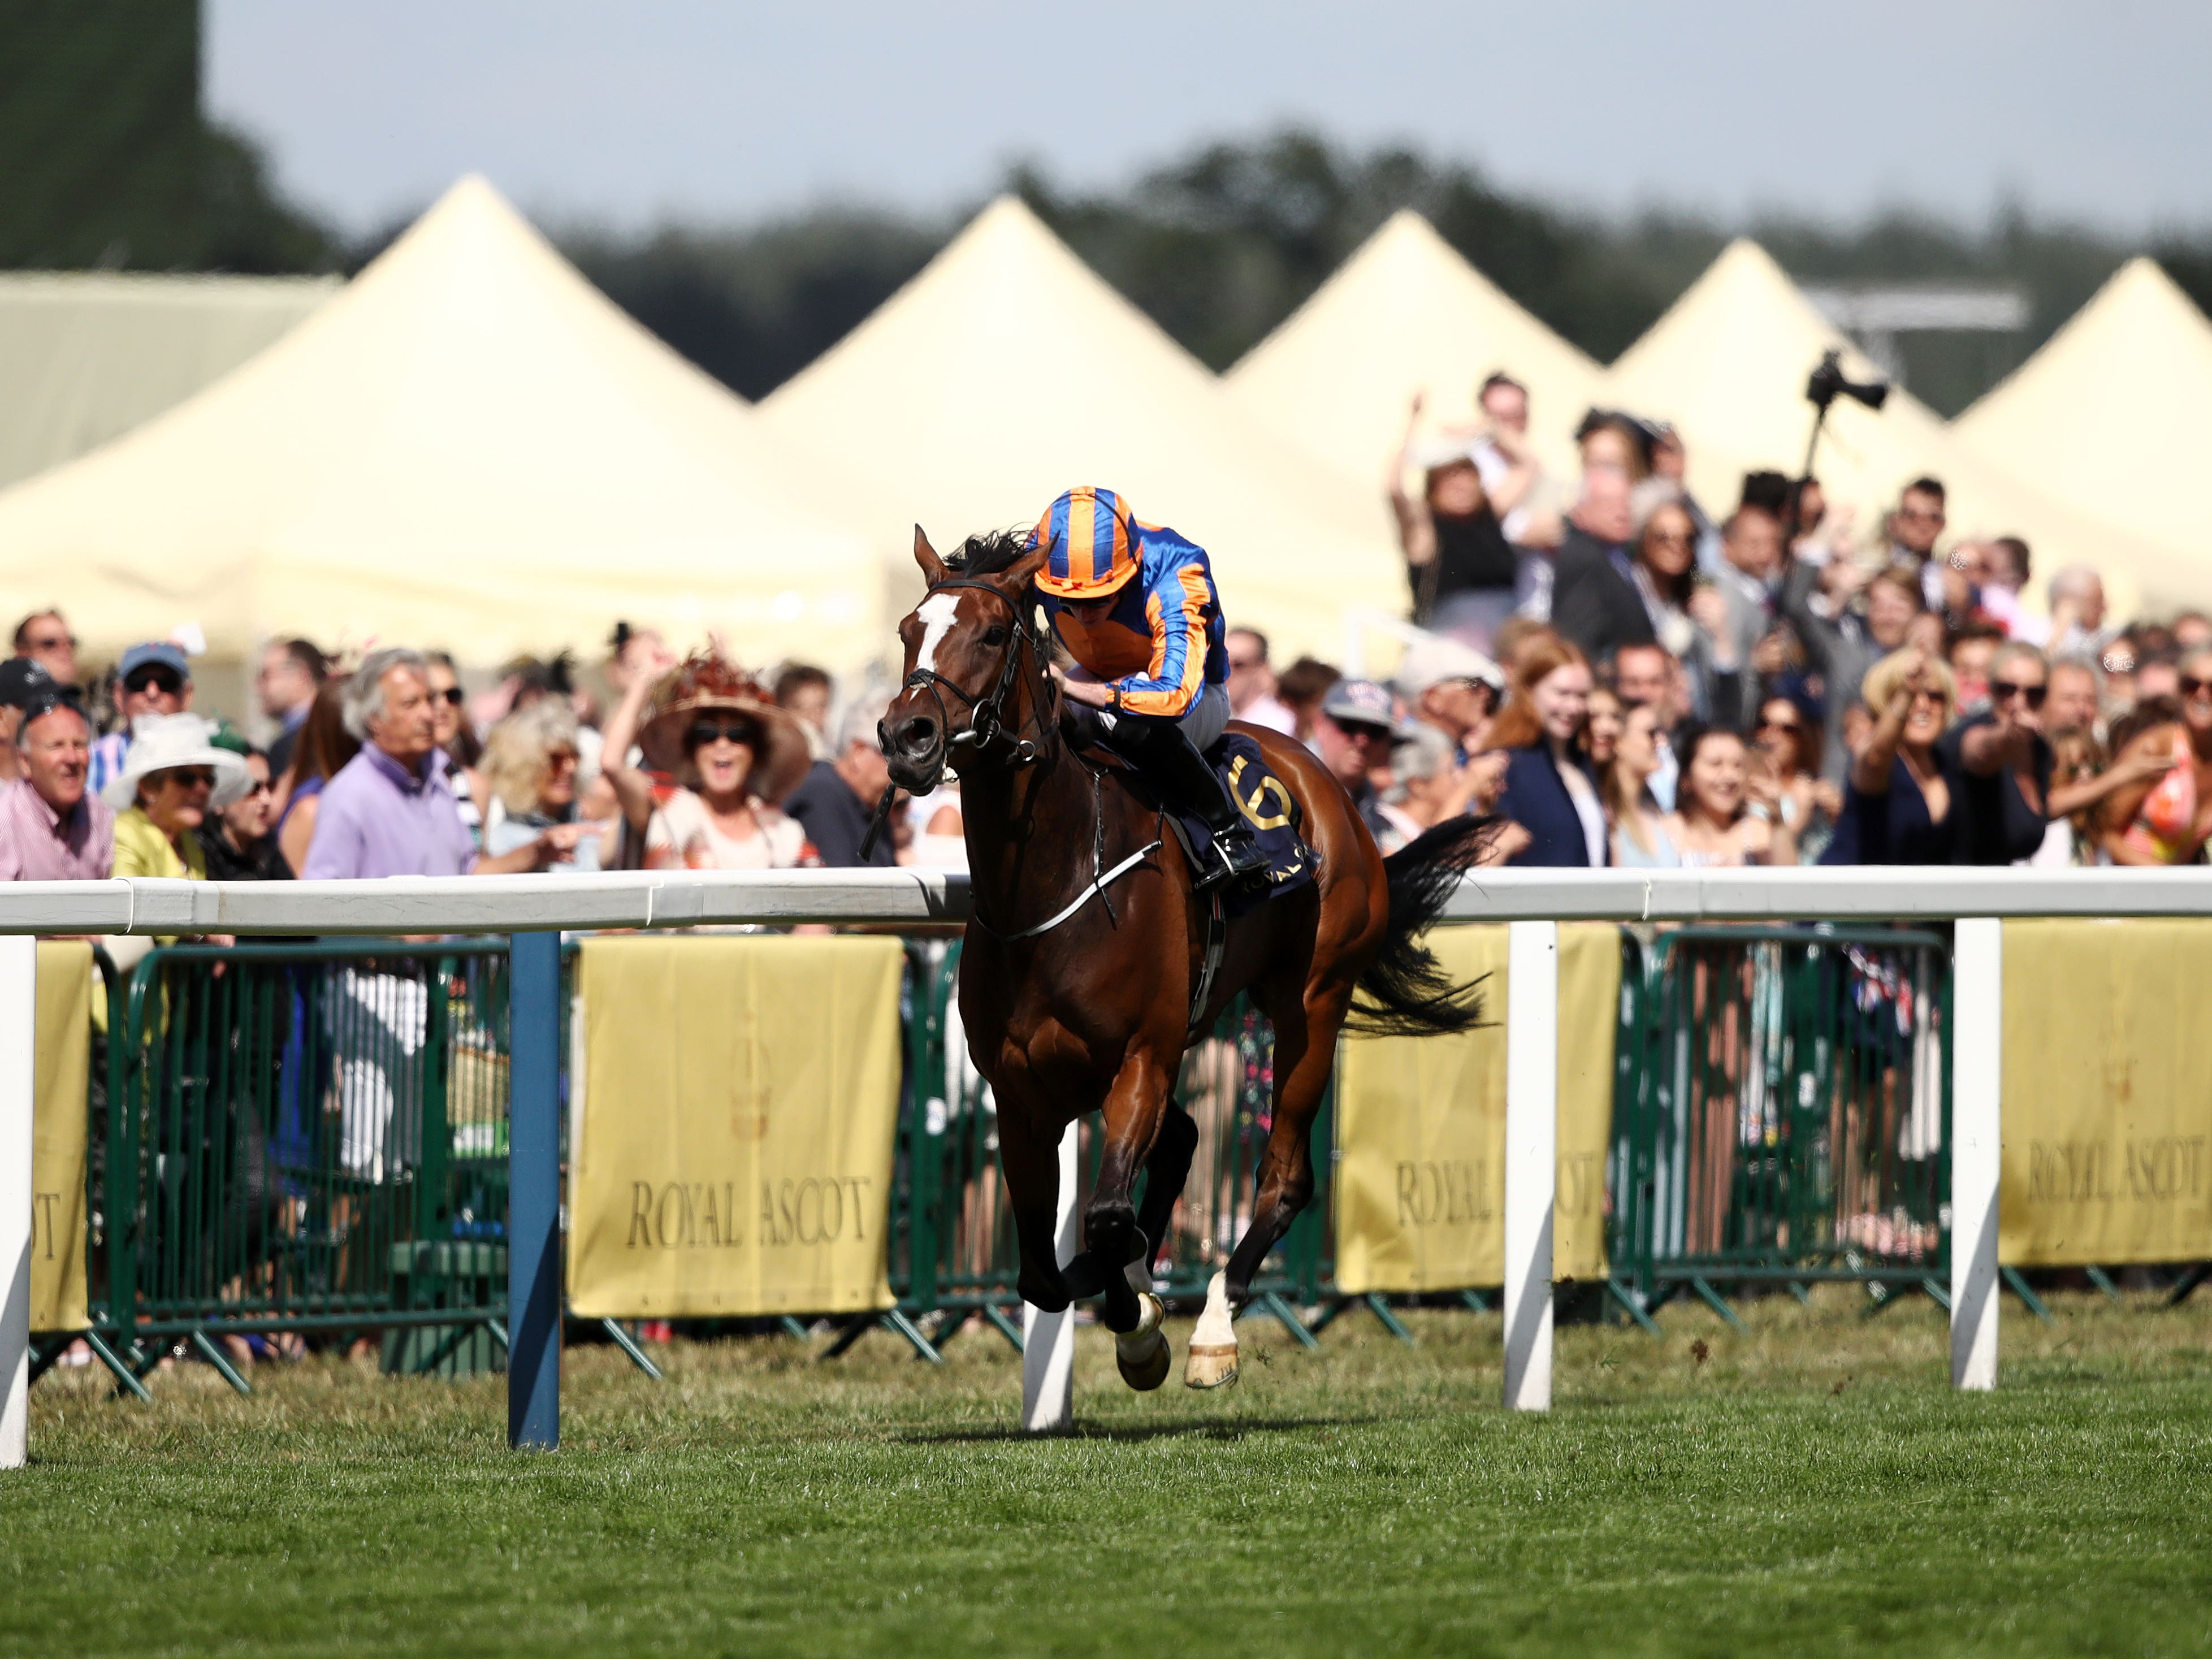 Magic Wand strolls to victory in the Ribblesdale at Ascot (John Walton/PA)